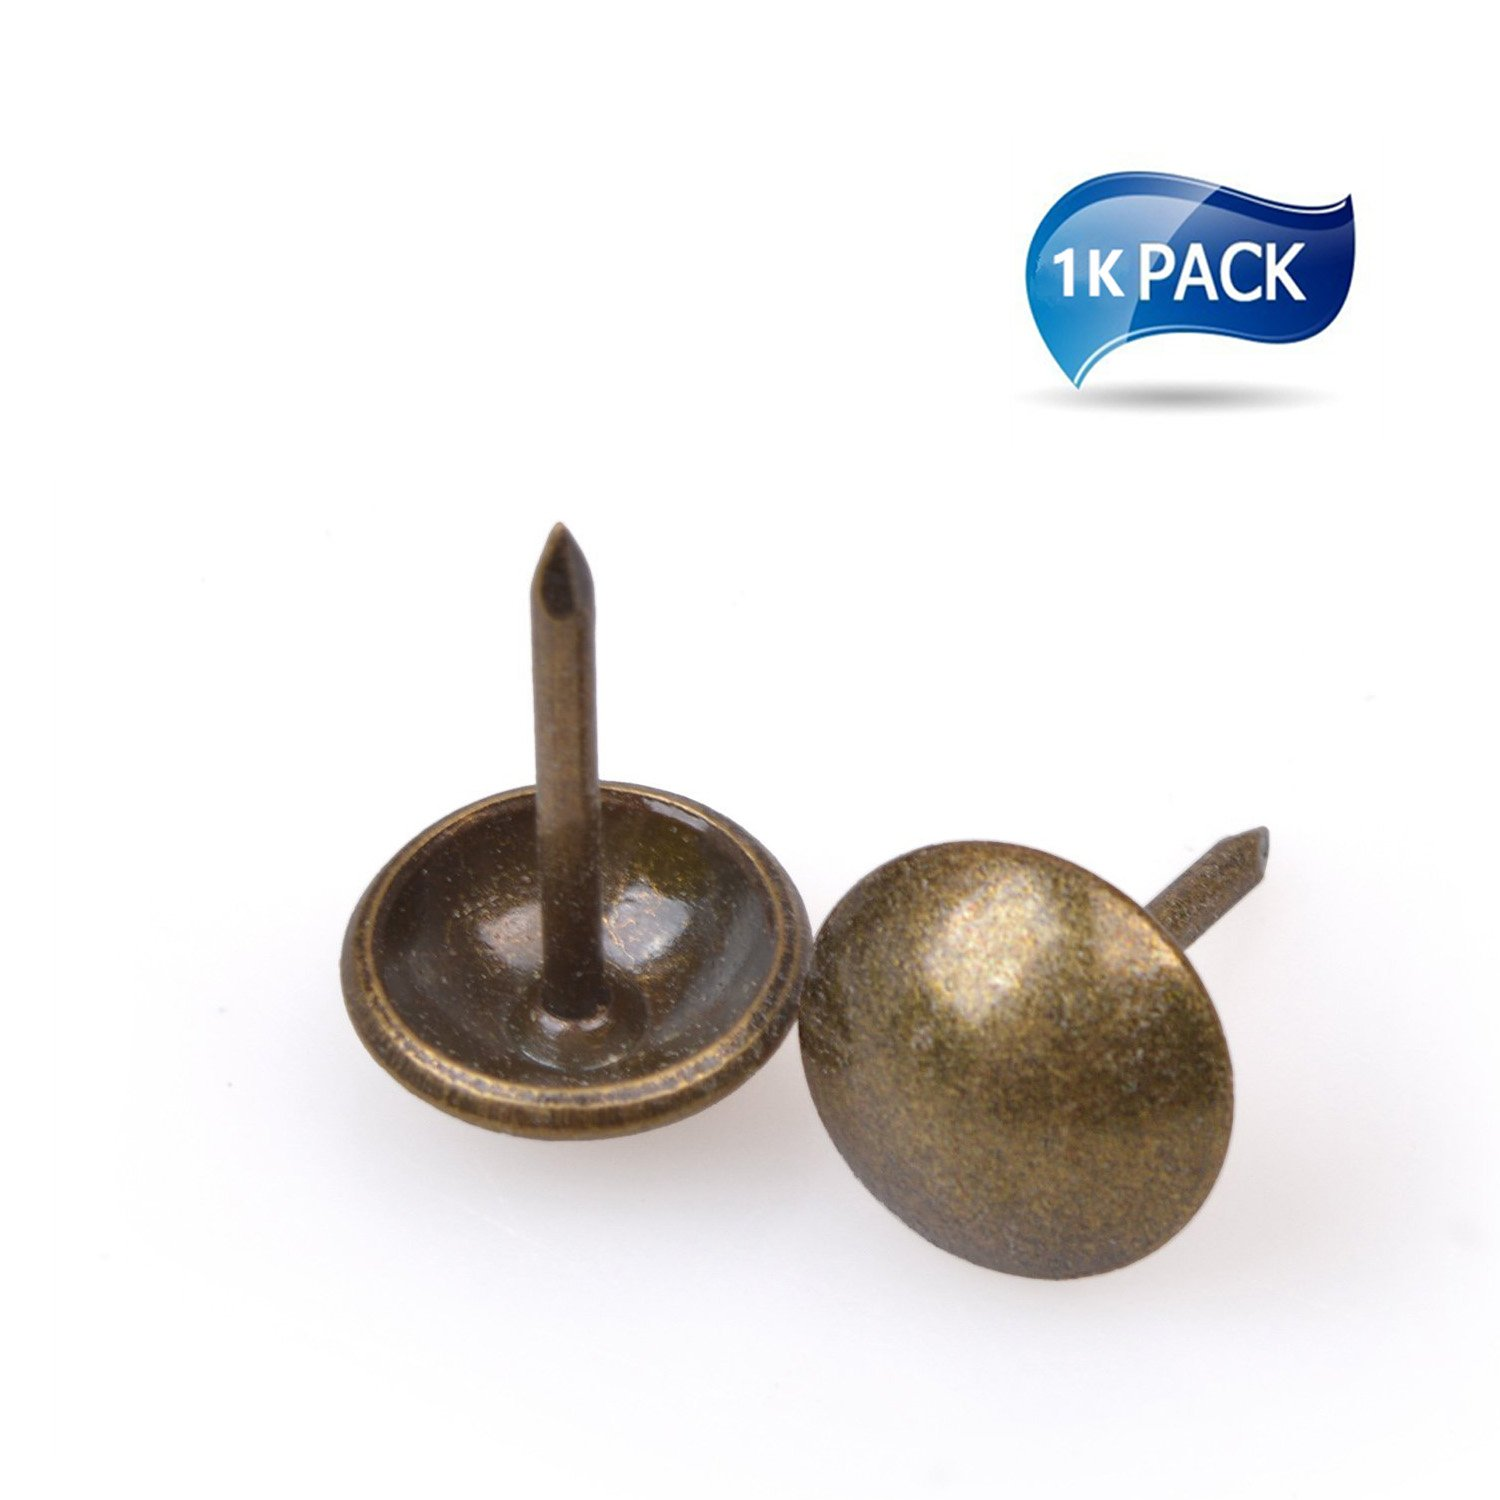 DIY Upholstery Nails,1000 PCS Furniture tacks, Upholstery Tacks, Thumb Tack Push Pins, 7/16in [Antique Brass Finish] … by 2CCM (Image #1)